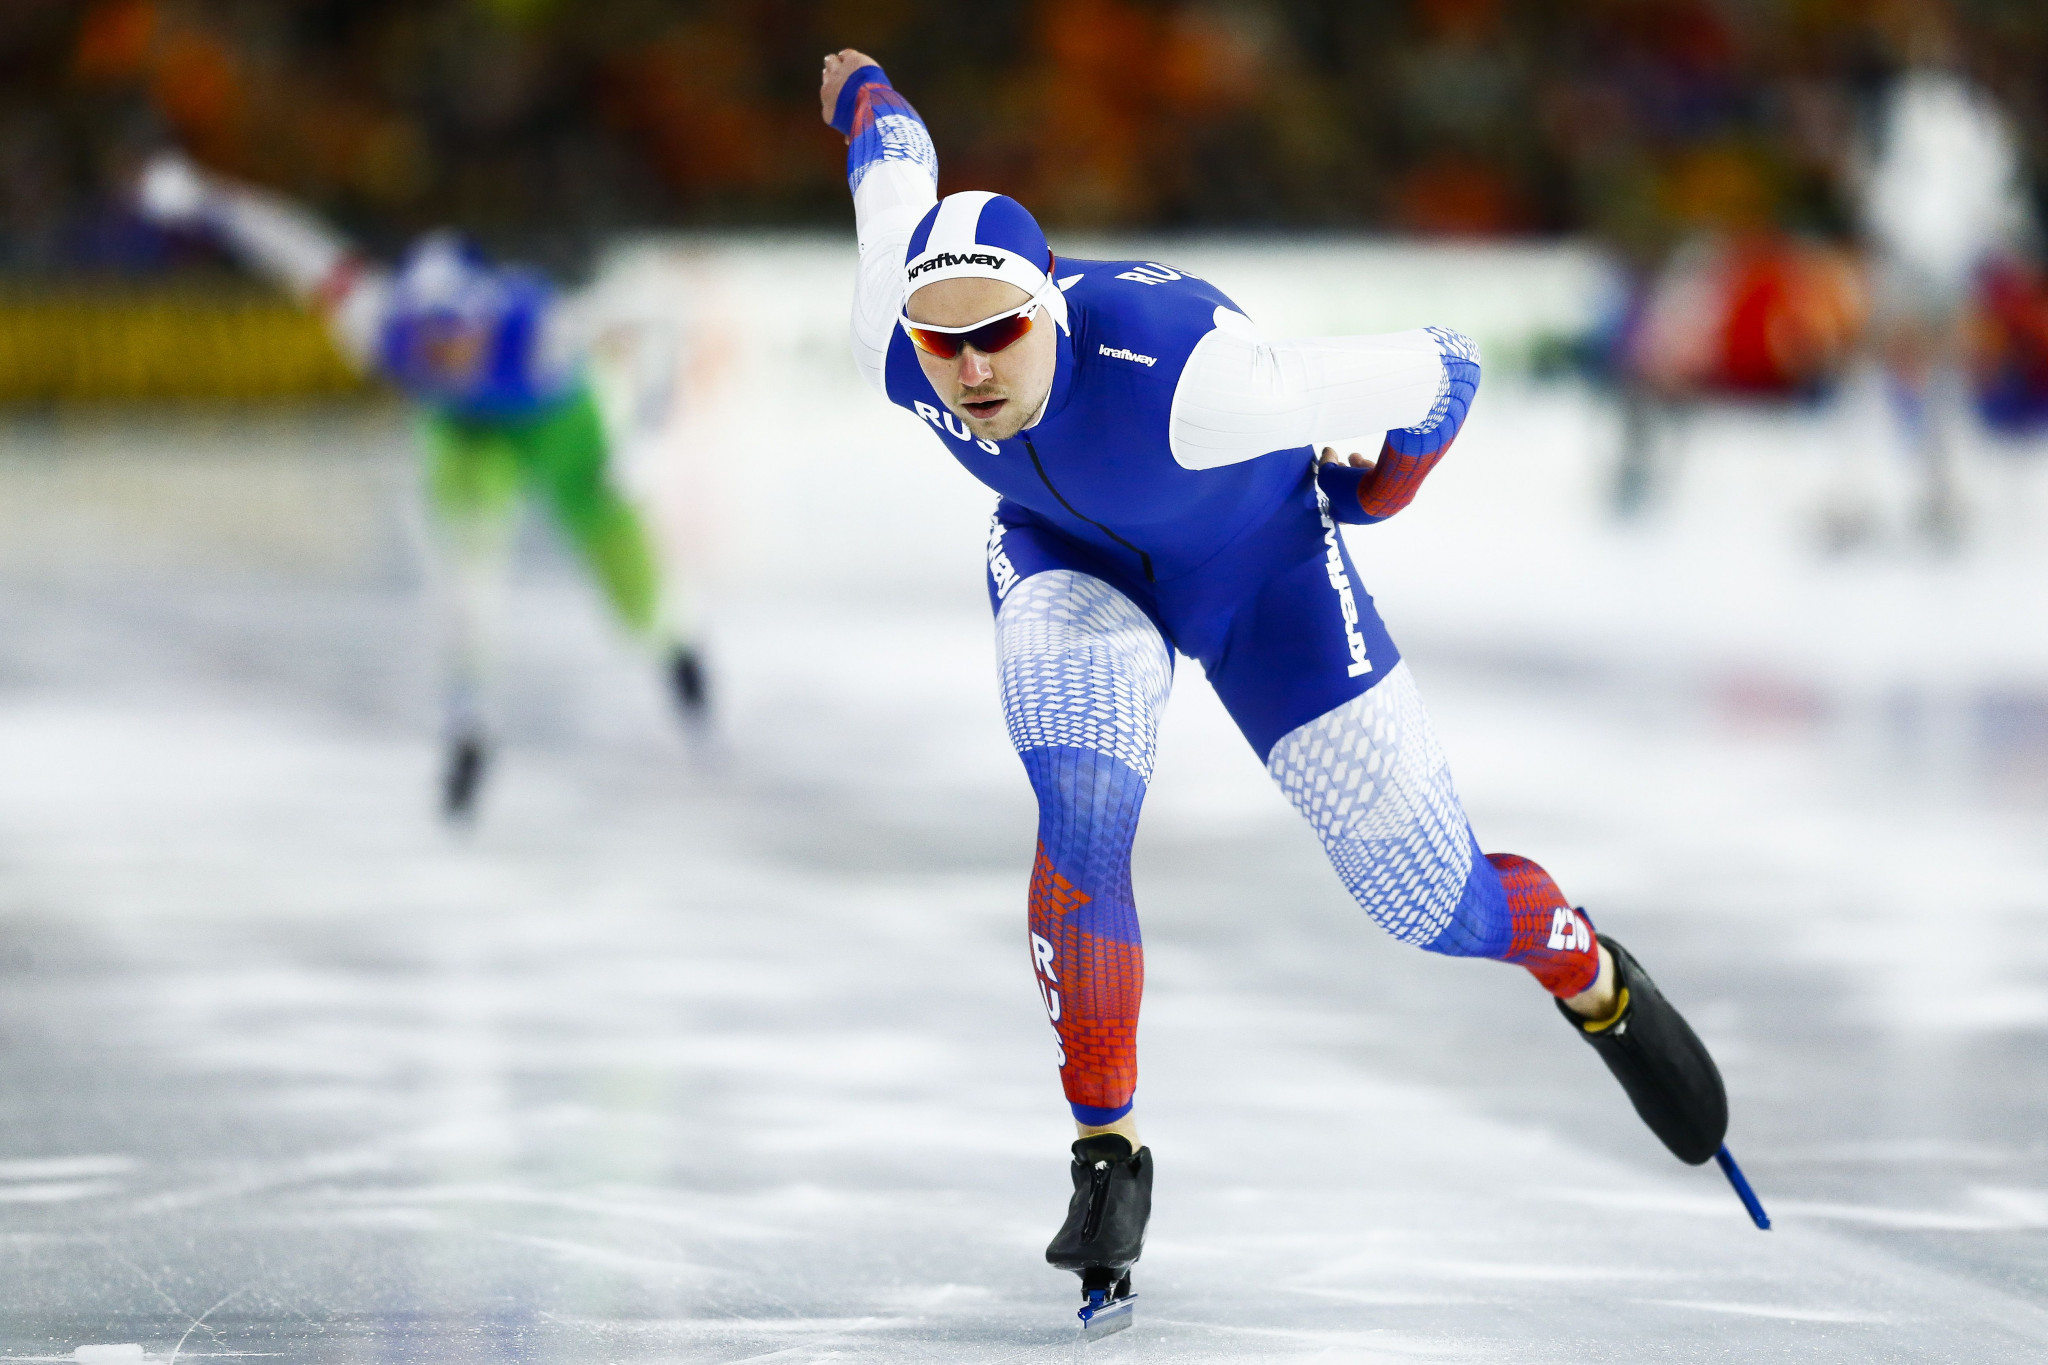 Pavel Kulizhnikov won his second gold of the Championships and broke the 1,000m world record ©Getty Images